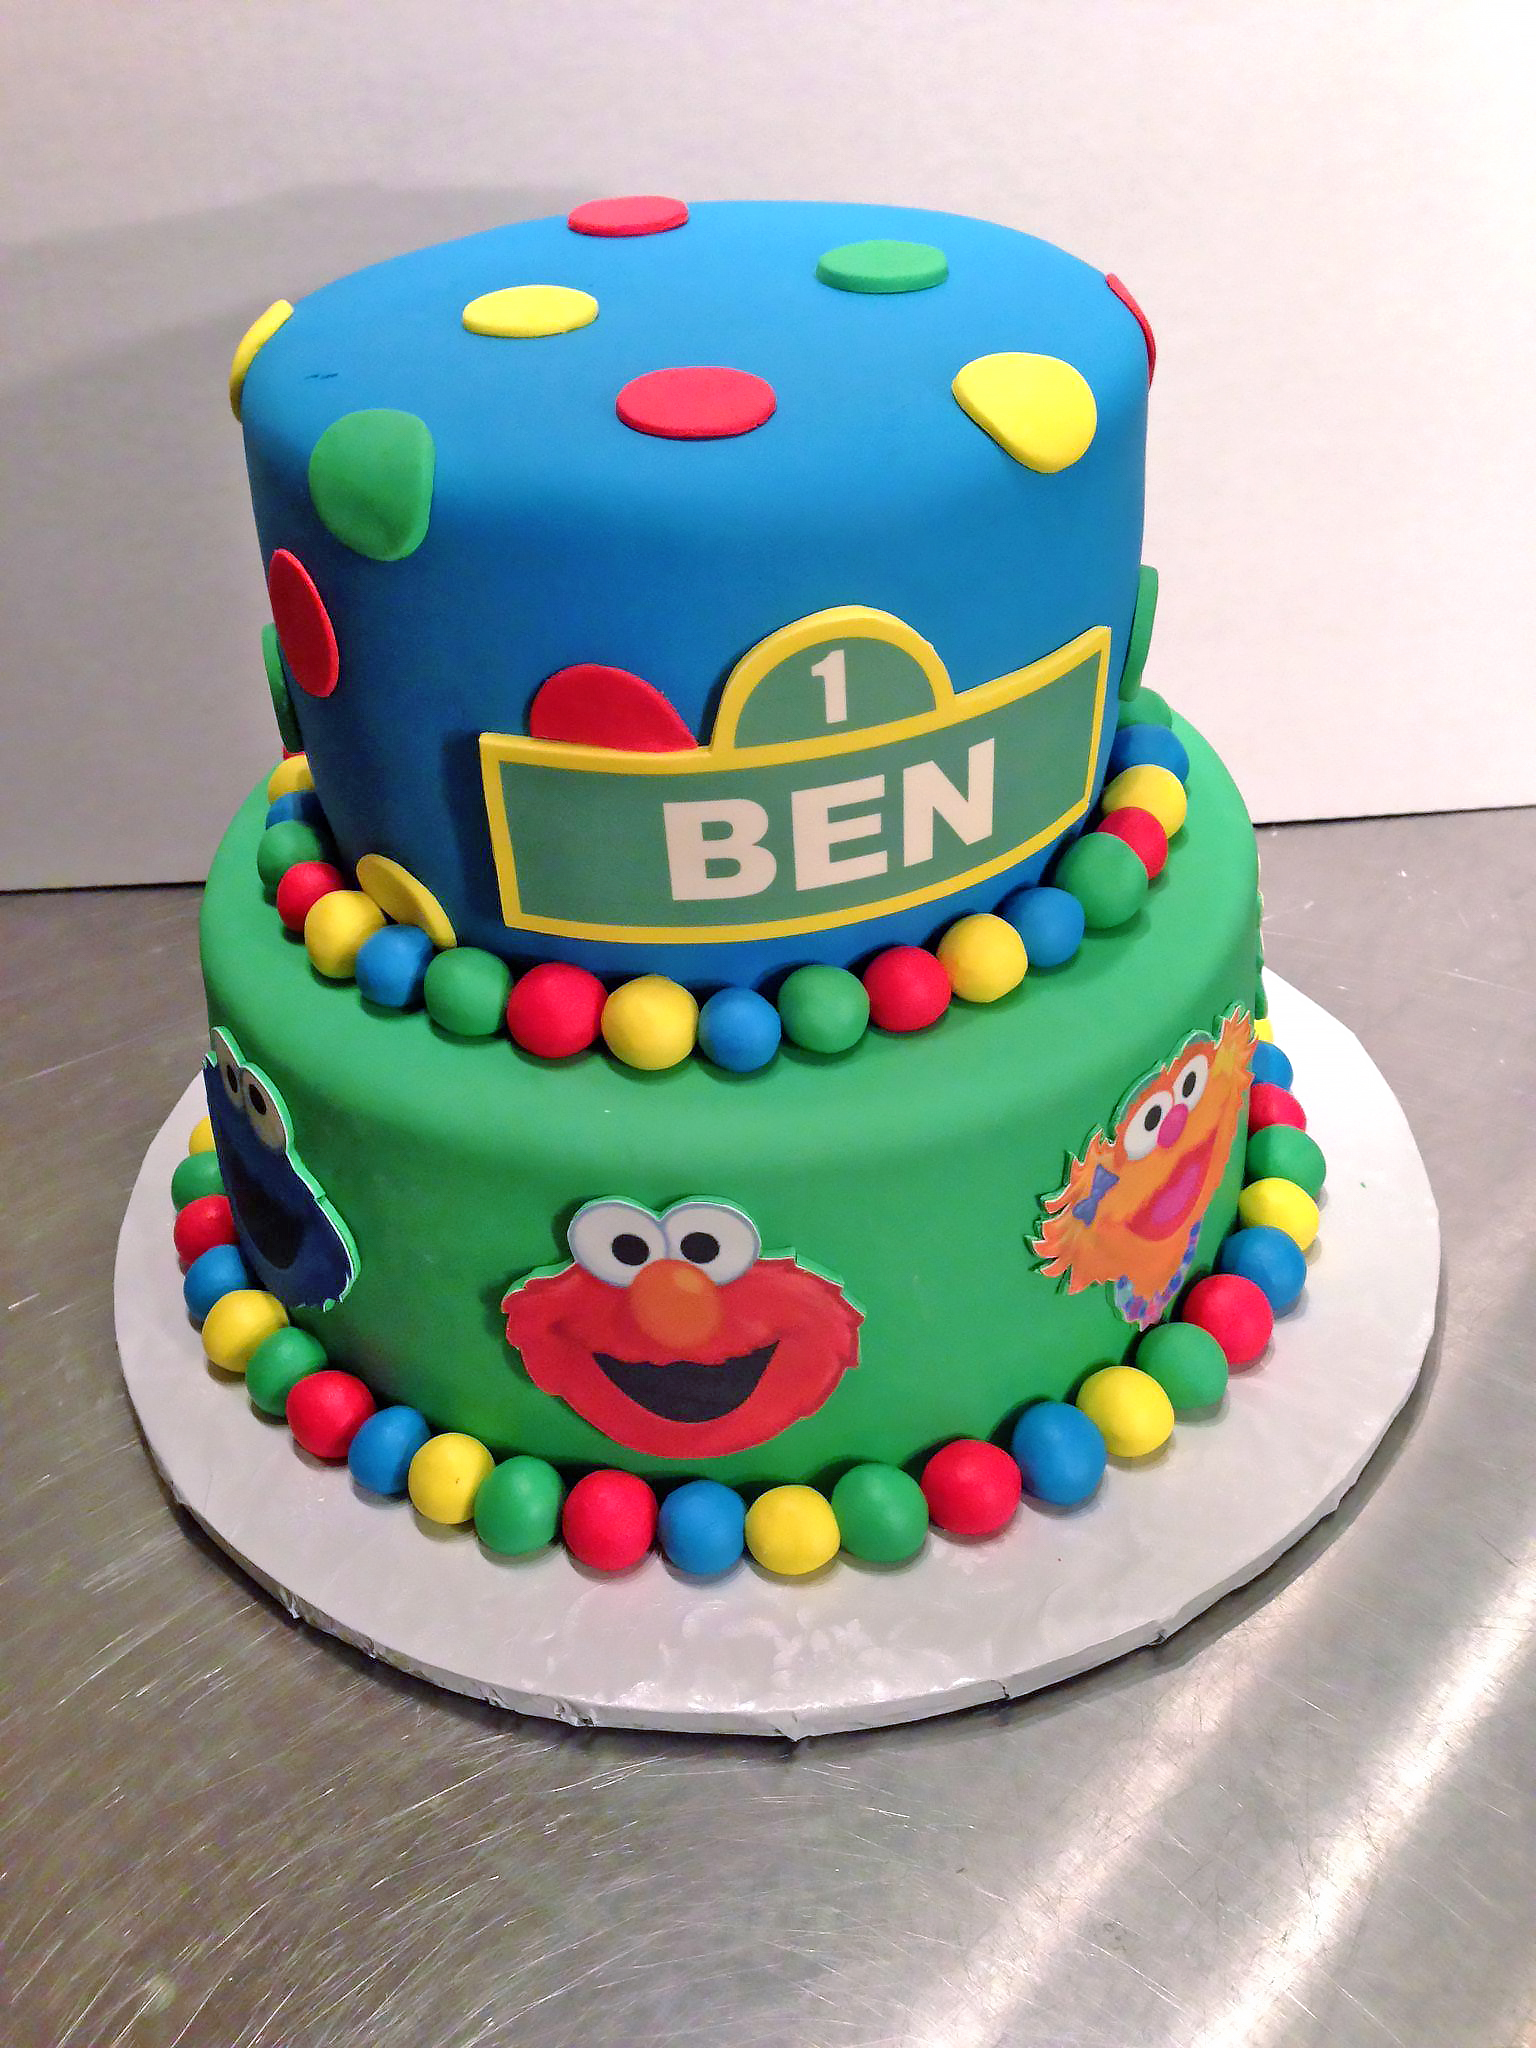 Tremendous Sesame Street Birthday Cakes Hands On Design Cakes Personalised Birthday Cards Paralily Jamesorg